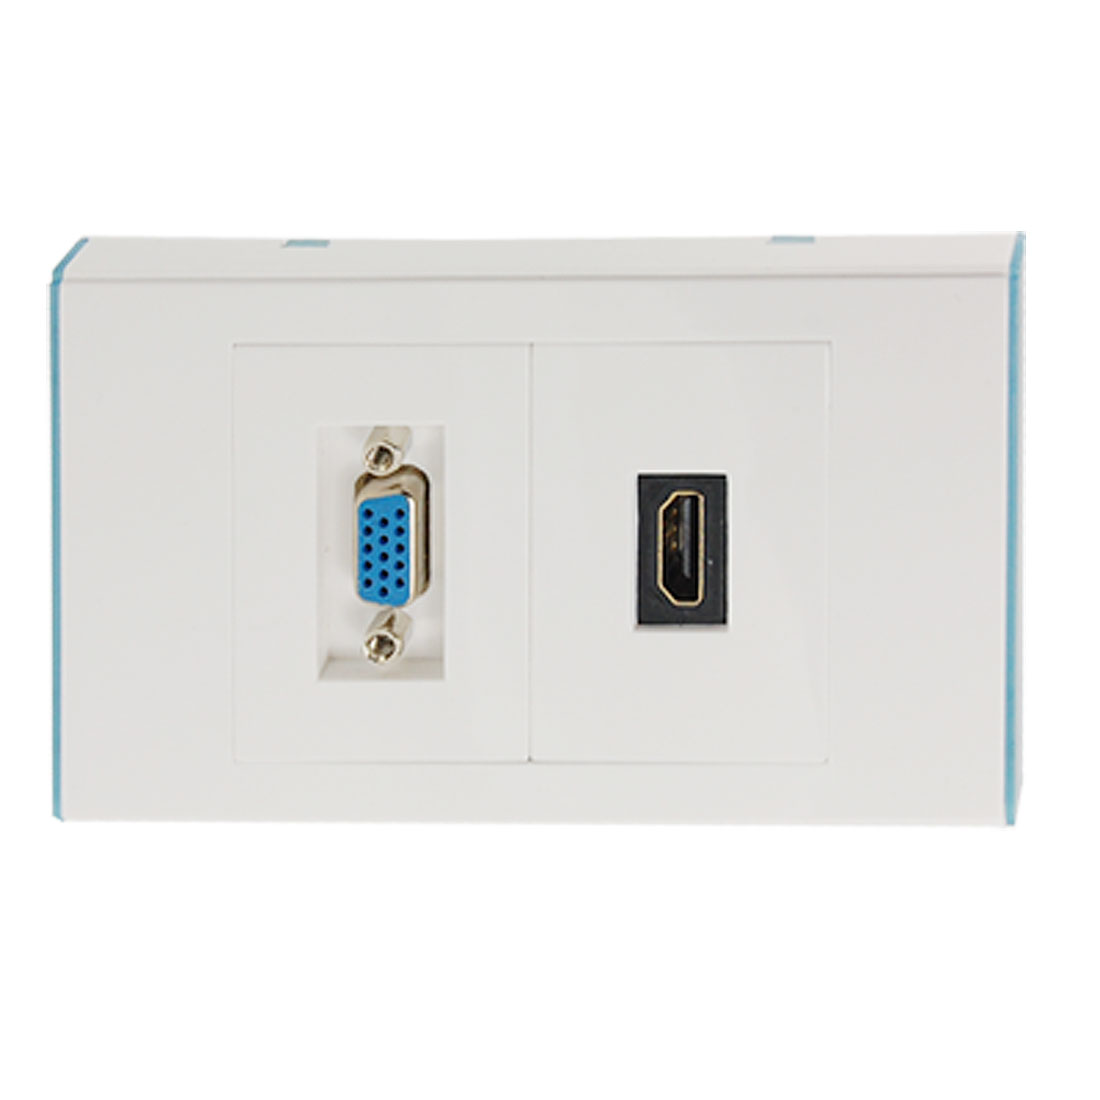 White VGA HDMI Wall Mounting Panel Socket Dual Jacks Plate